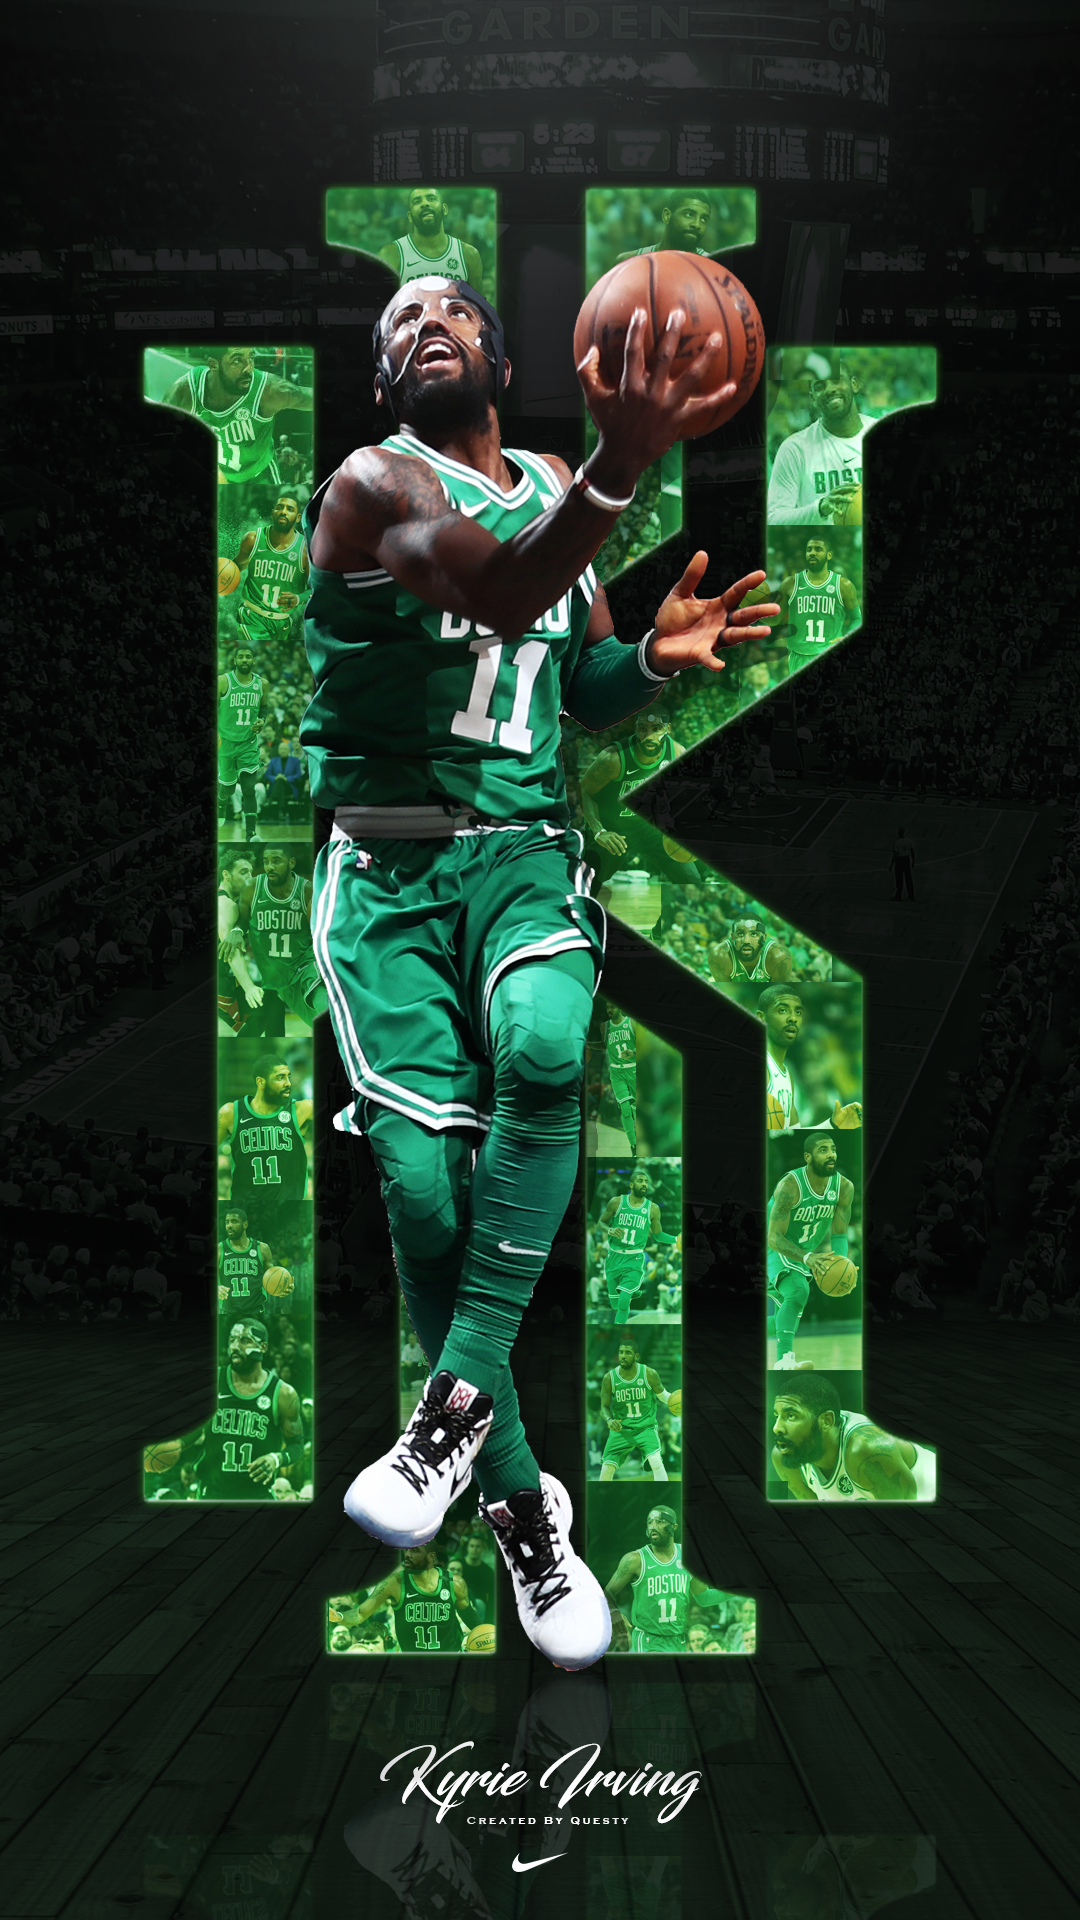 Kyrie Irving Celtics Iphone Wallpaper Created By Questytv On Twitter Kyrie Irving Celtics Irving Wallpapers Nba Wallpapers